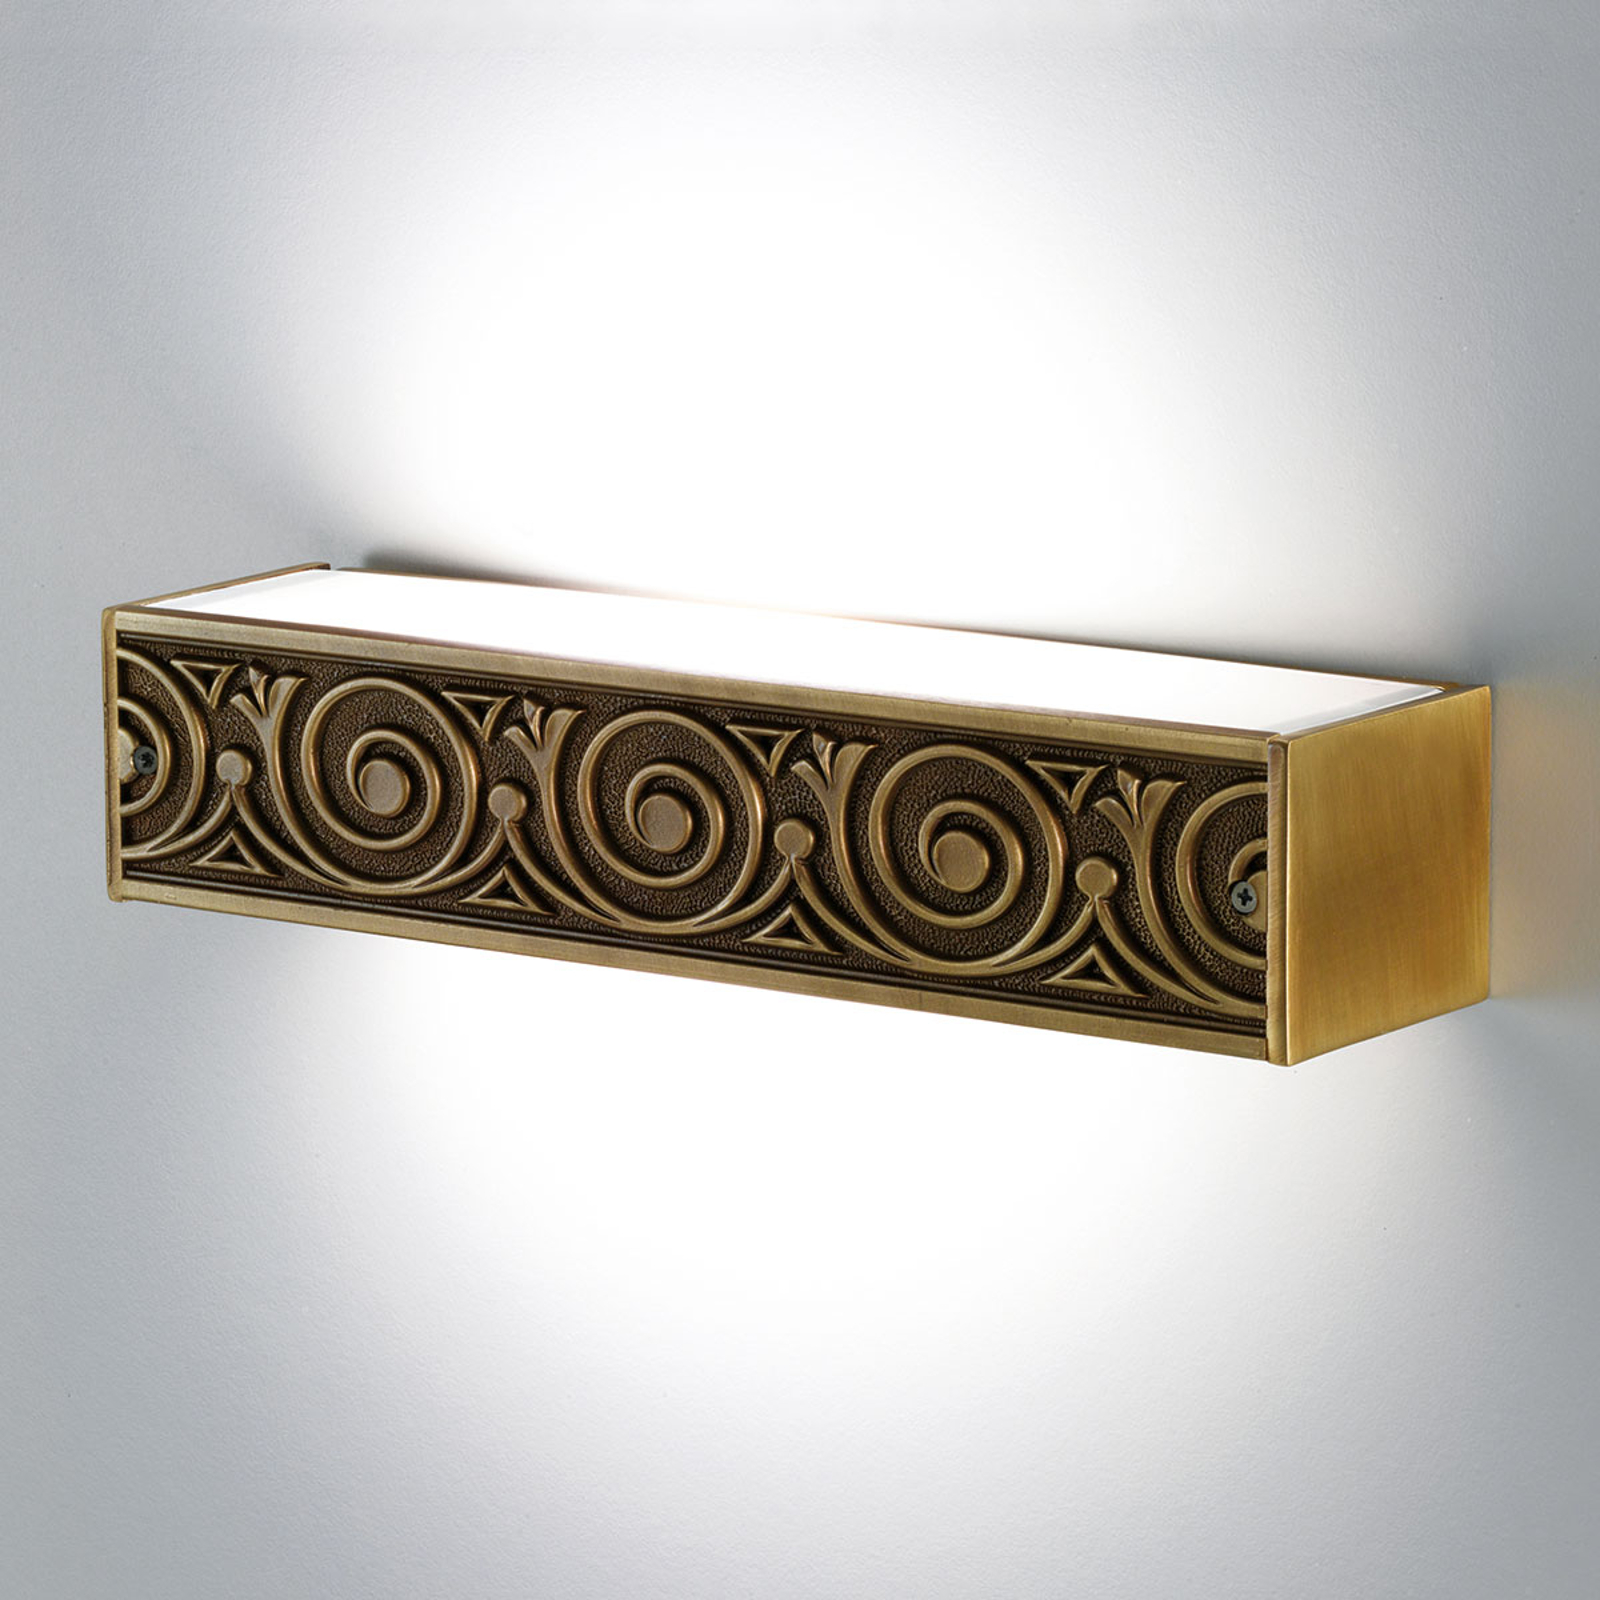 Elegantly decorated Greca wall light_2008197_1